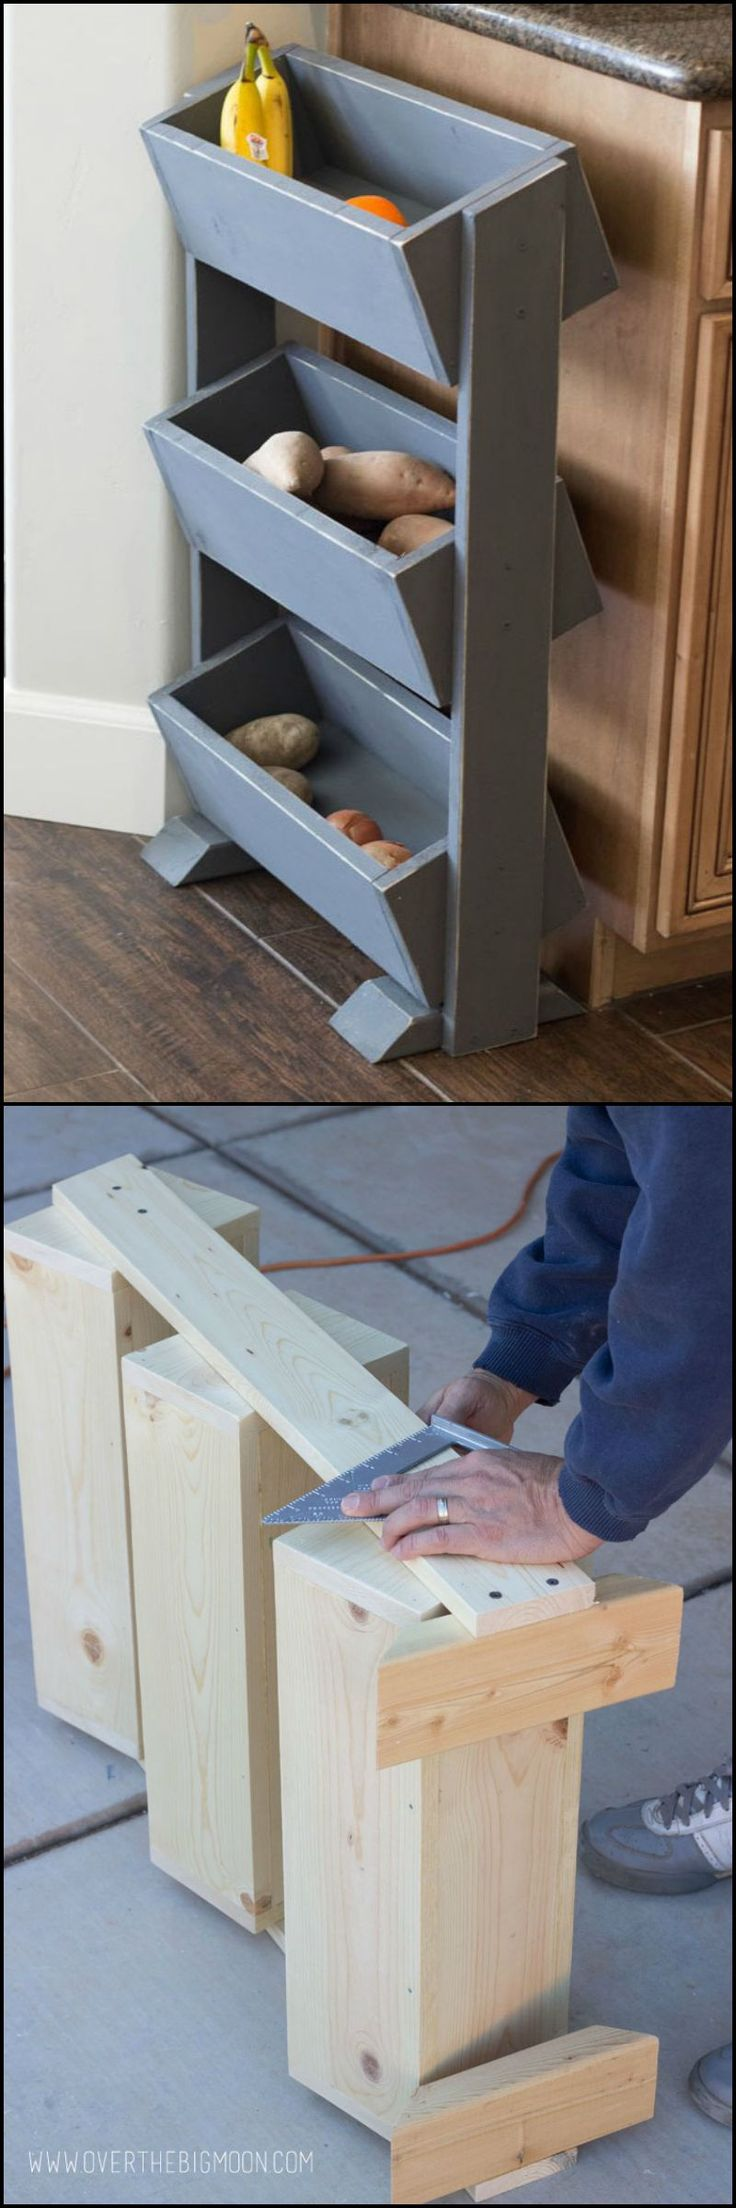 This DIY produce stand is an efficient and stylish storage system you can add to your kitchen.   To help you increase your kitchen storage space, we've hand picked these simple kitchen storage ideas: http://theownerbuildernetwork.co/1lq1  Could you use one of these in your kitchen?